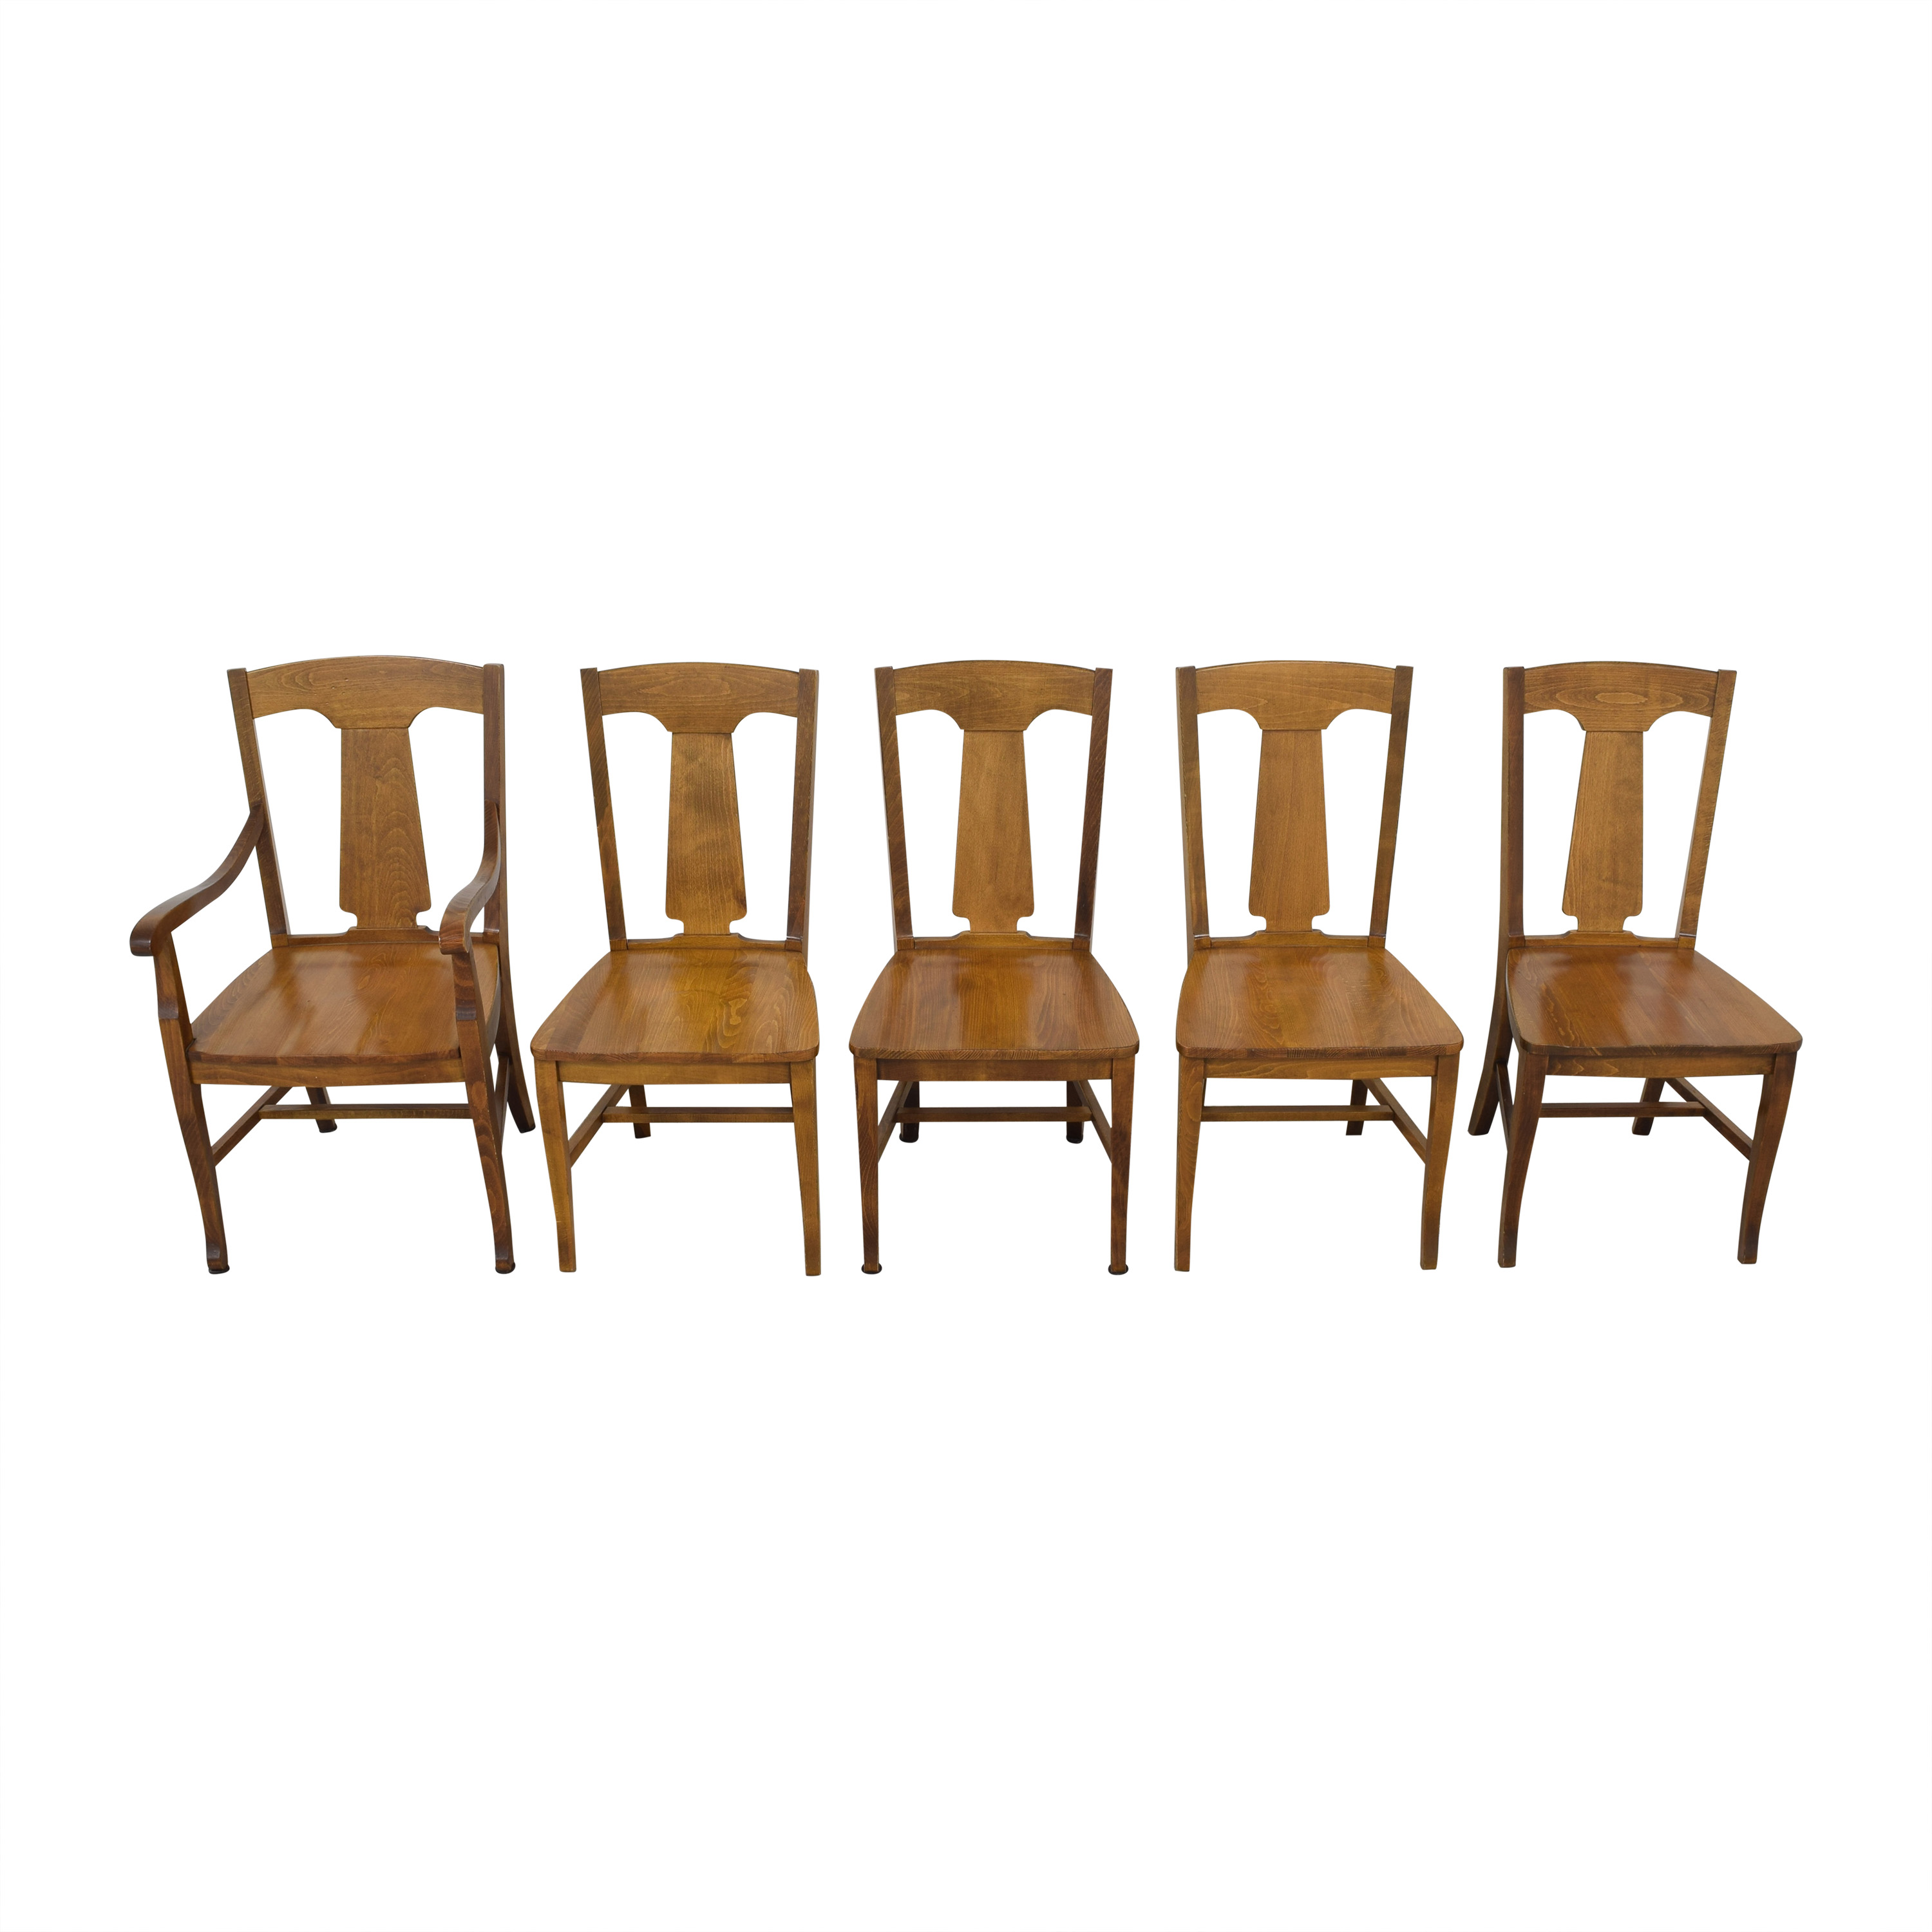 Pottery Barn Loren Dining Chairs / Chairs